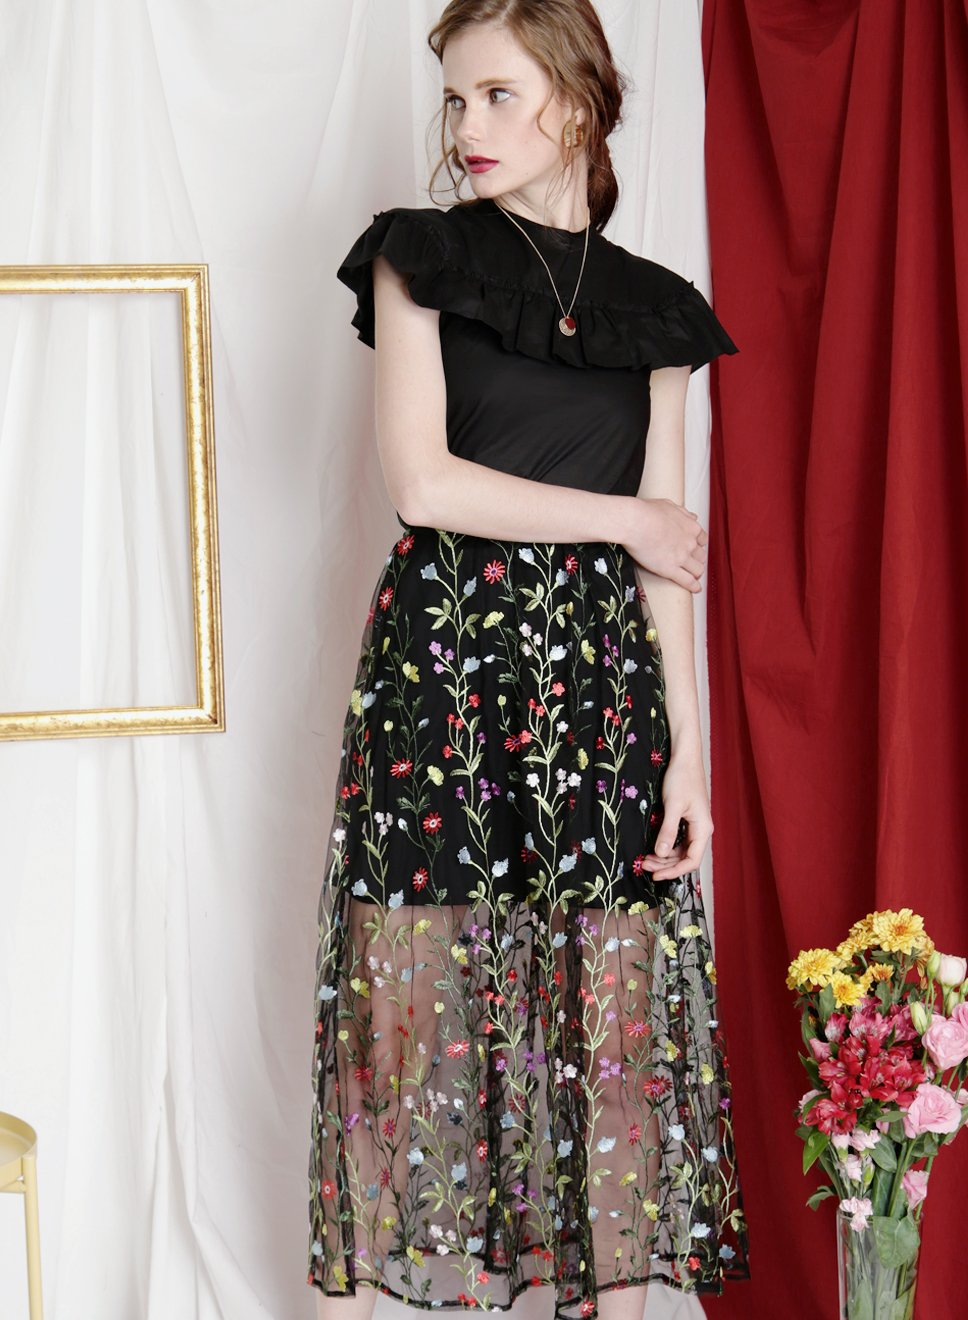 GLIMMER Embroidered Mesh Skirt (Black) - And Well Dressed